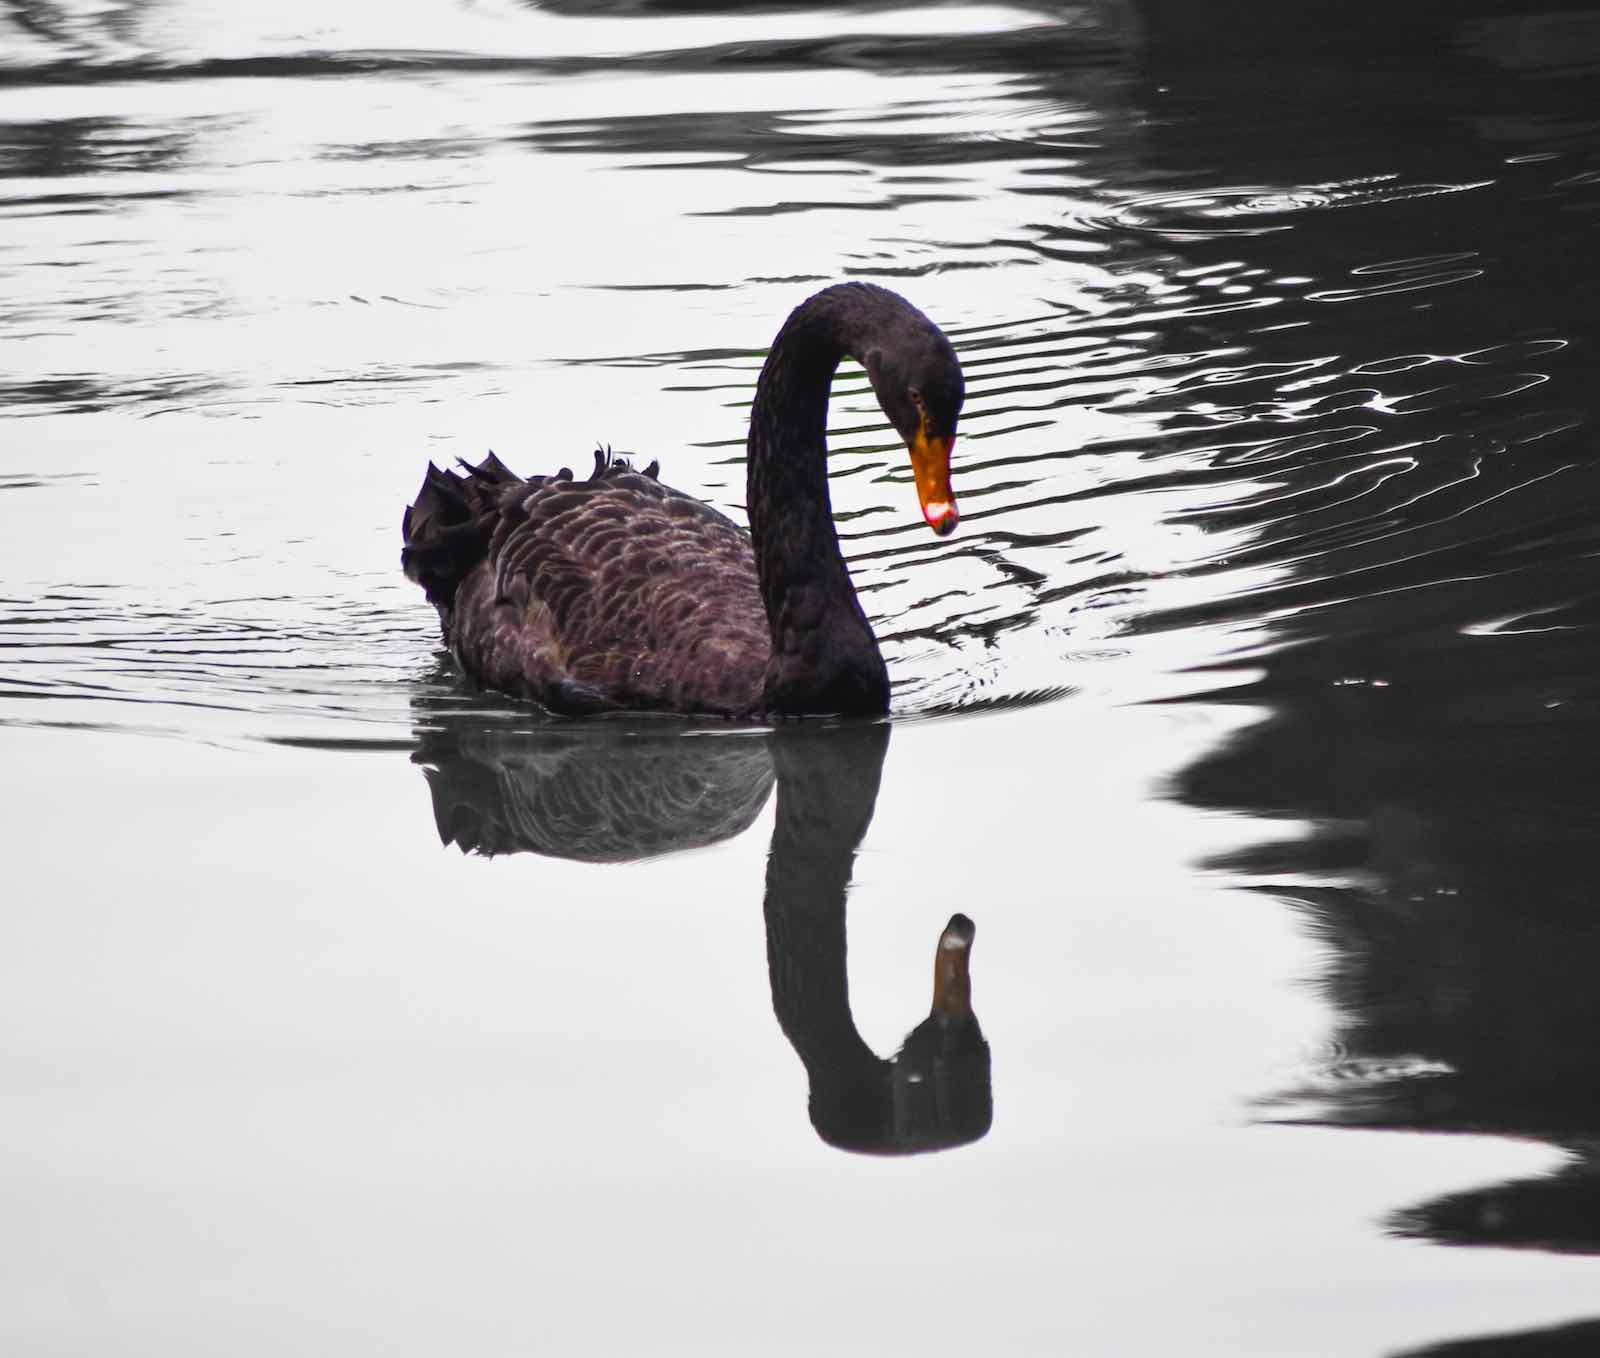 """A hard look at the state of politics in Australia might avoid our own """"black swan"""" event (Photo: Vandan Patel/unsplash)"""